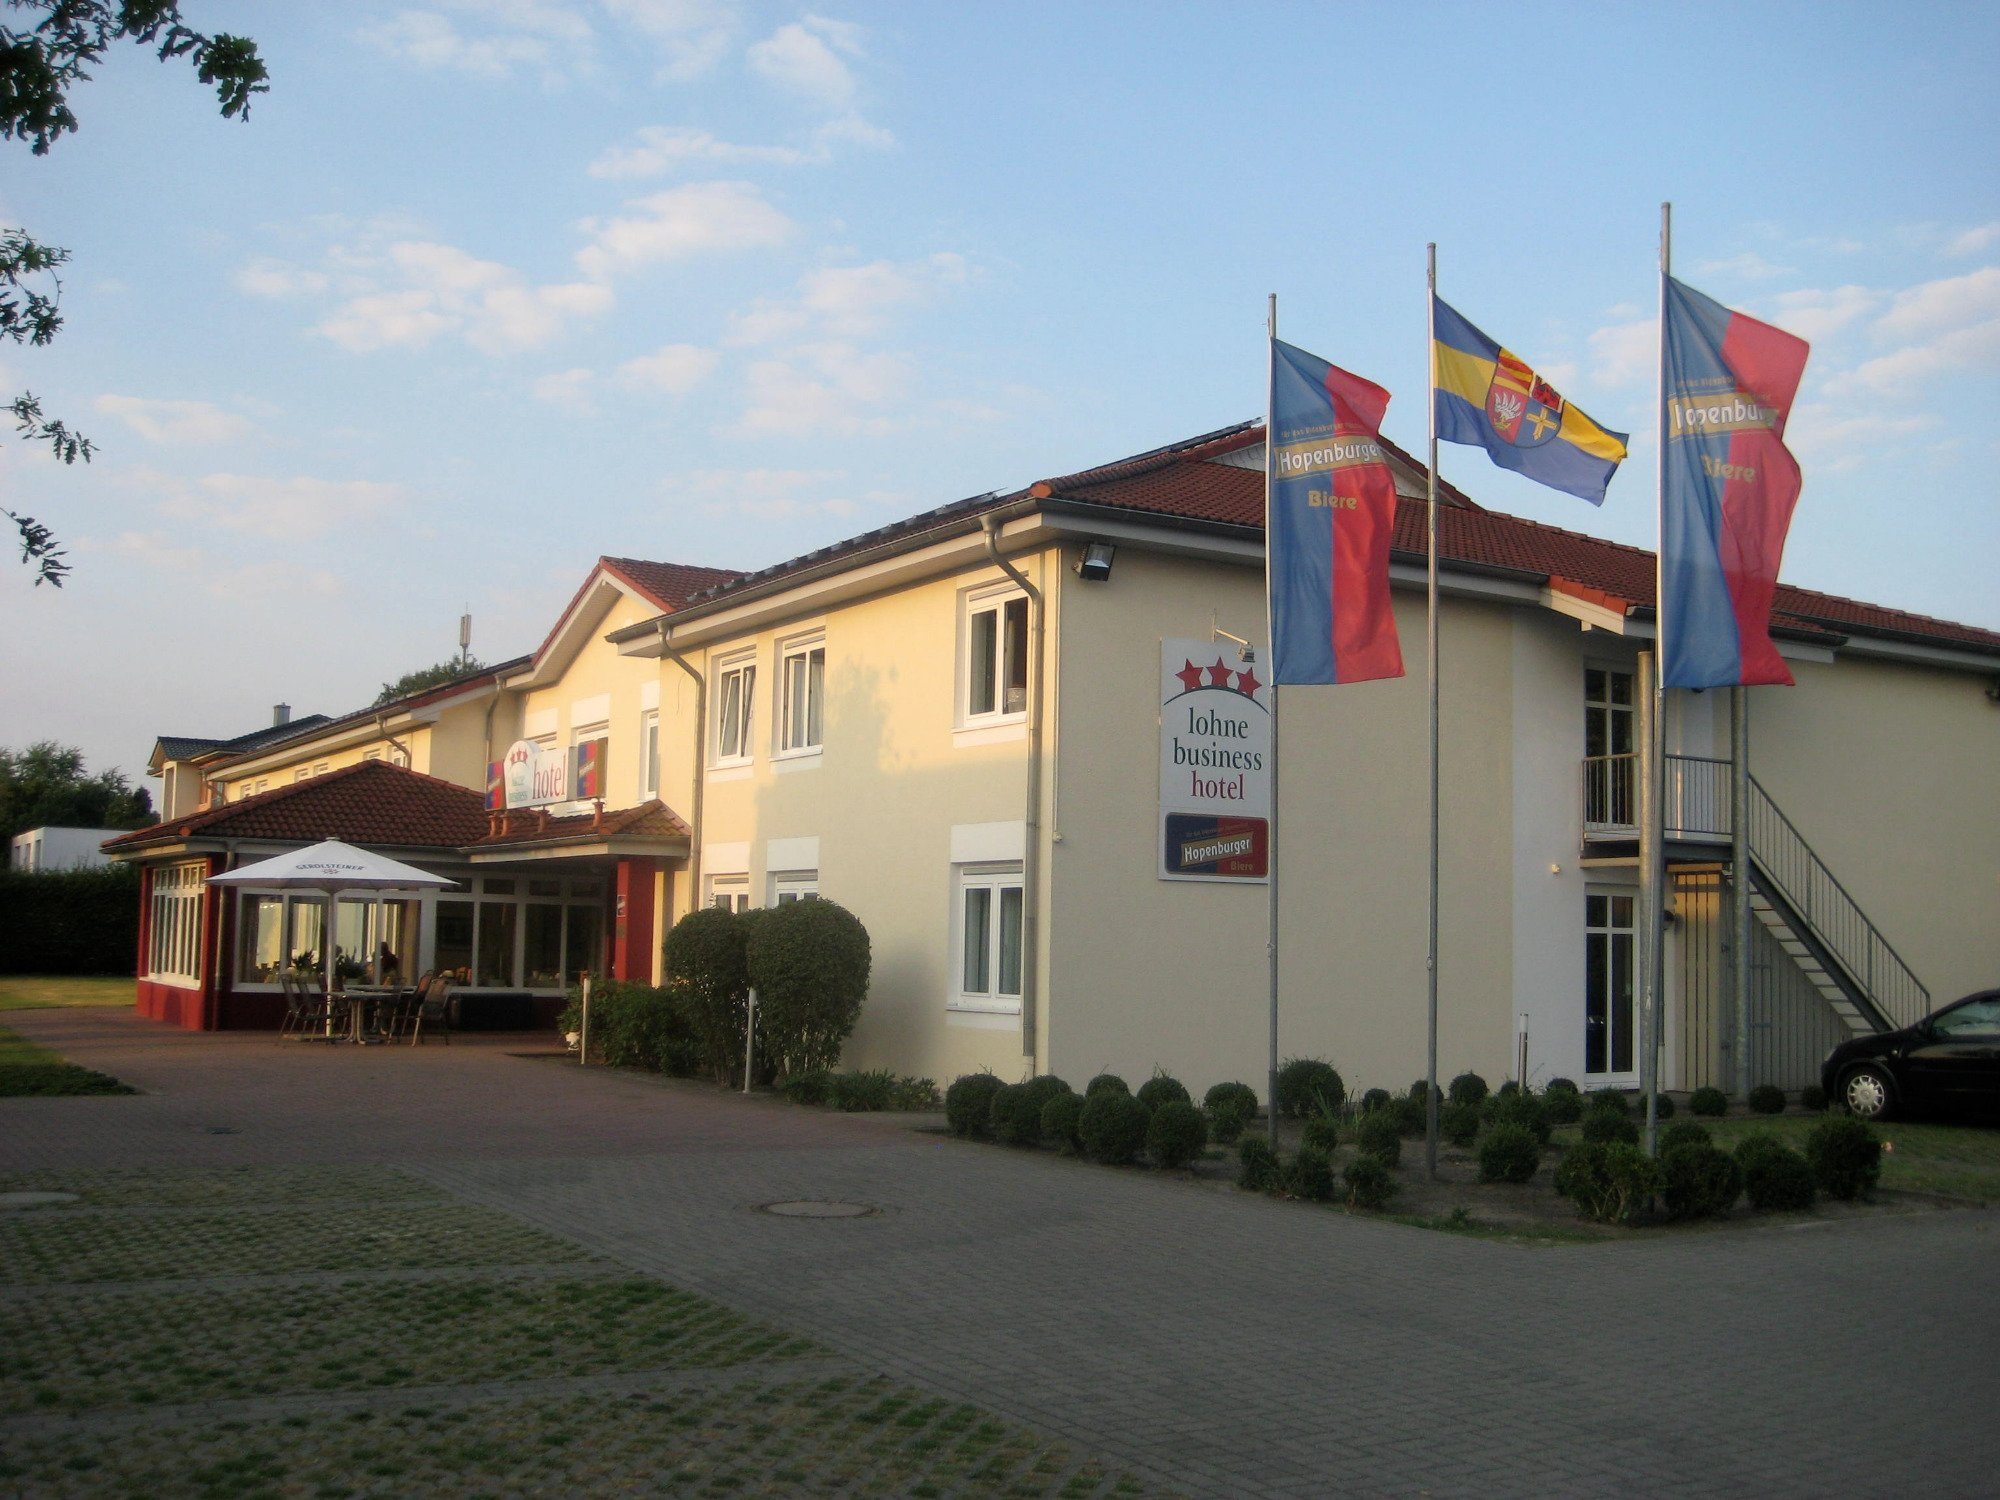 Lohne Business Hotel